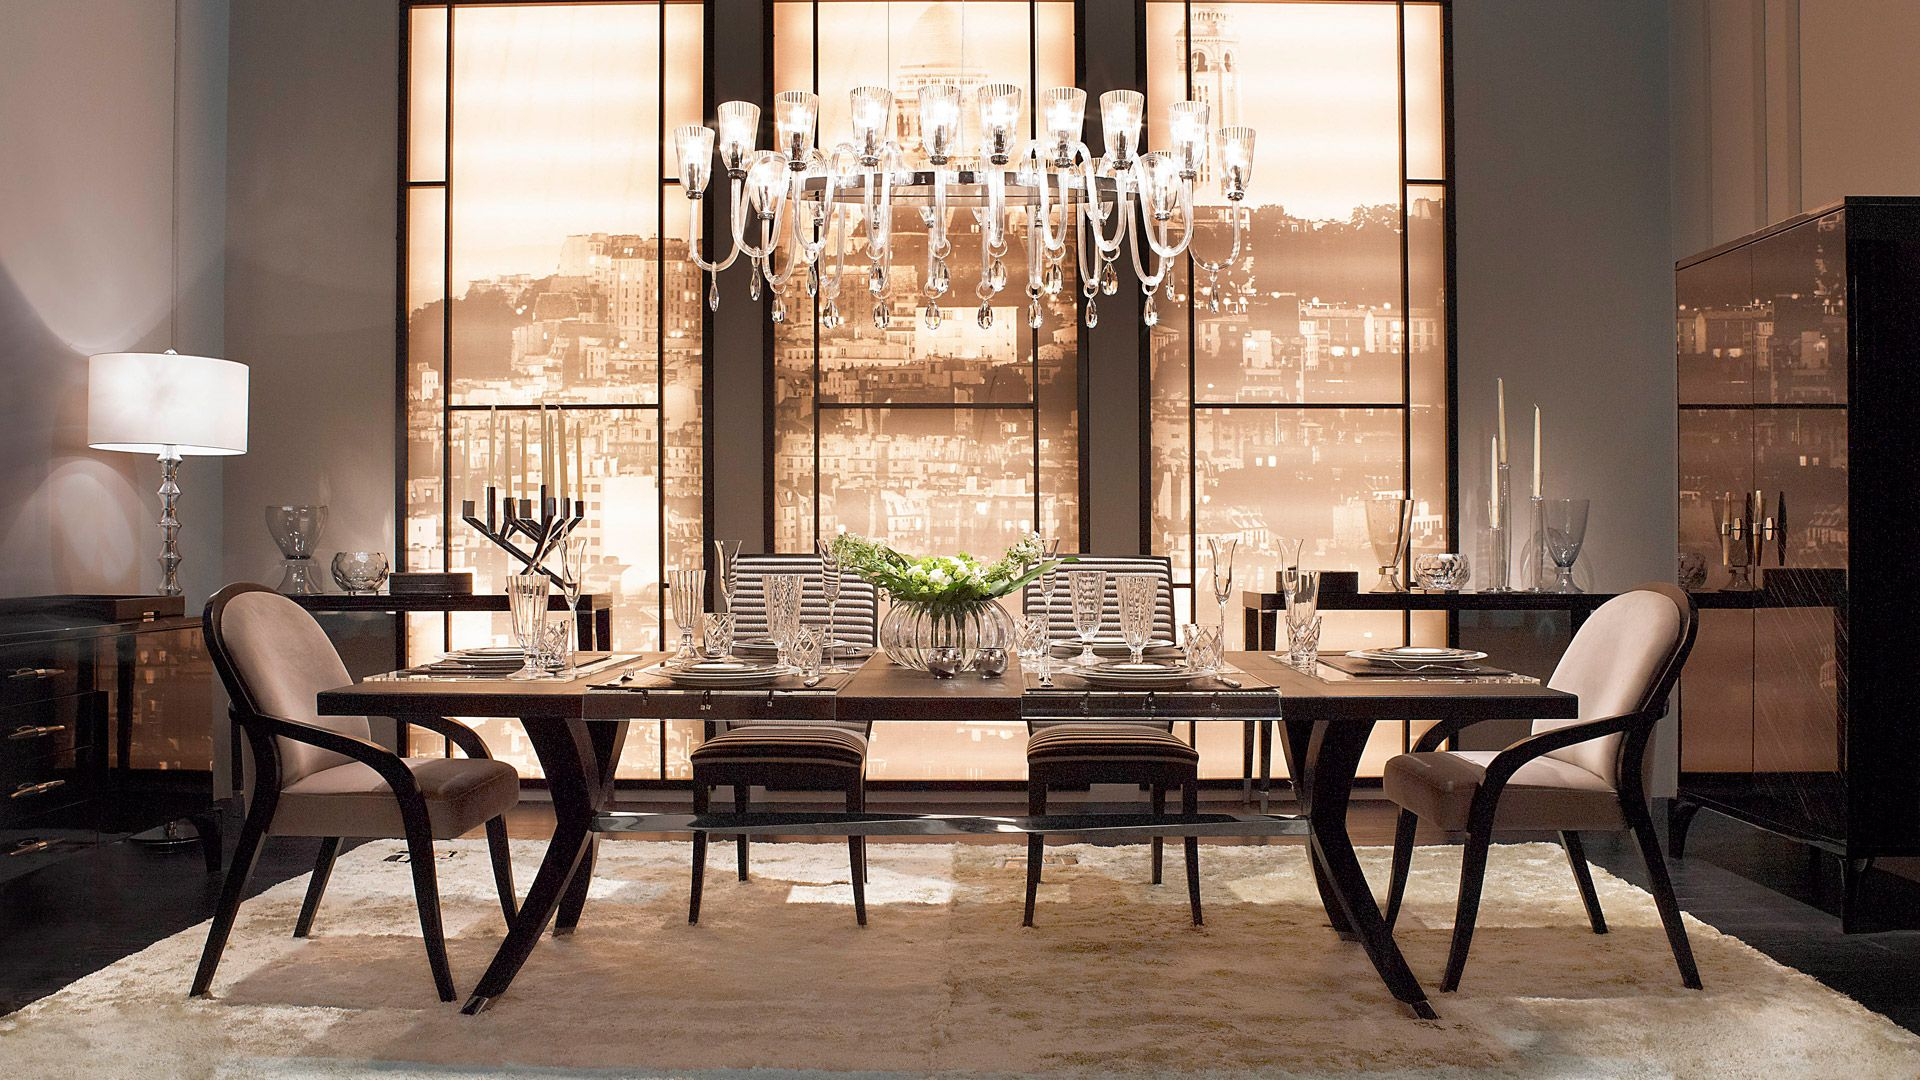 Dining room sets is your main decoration